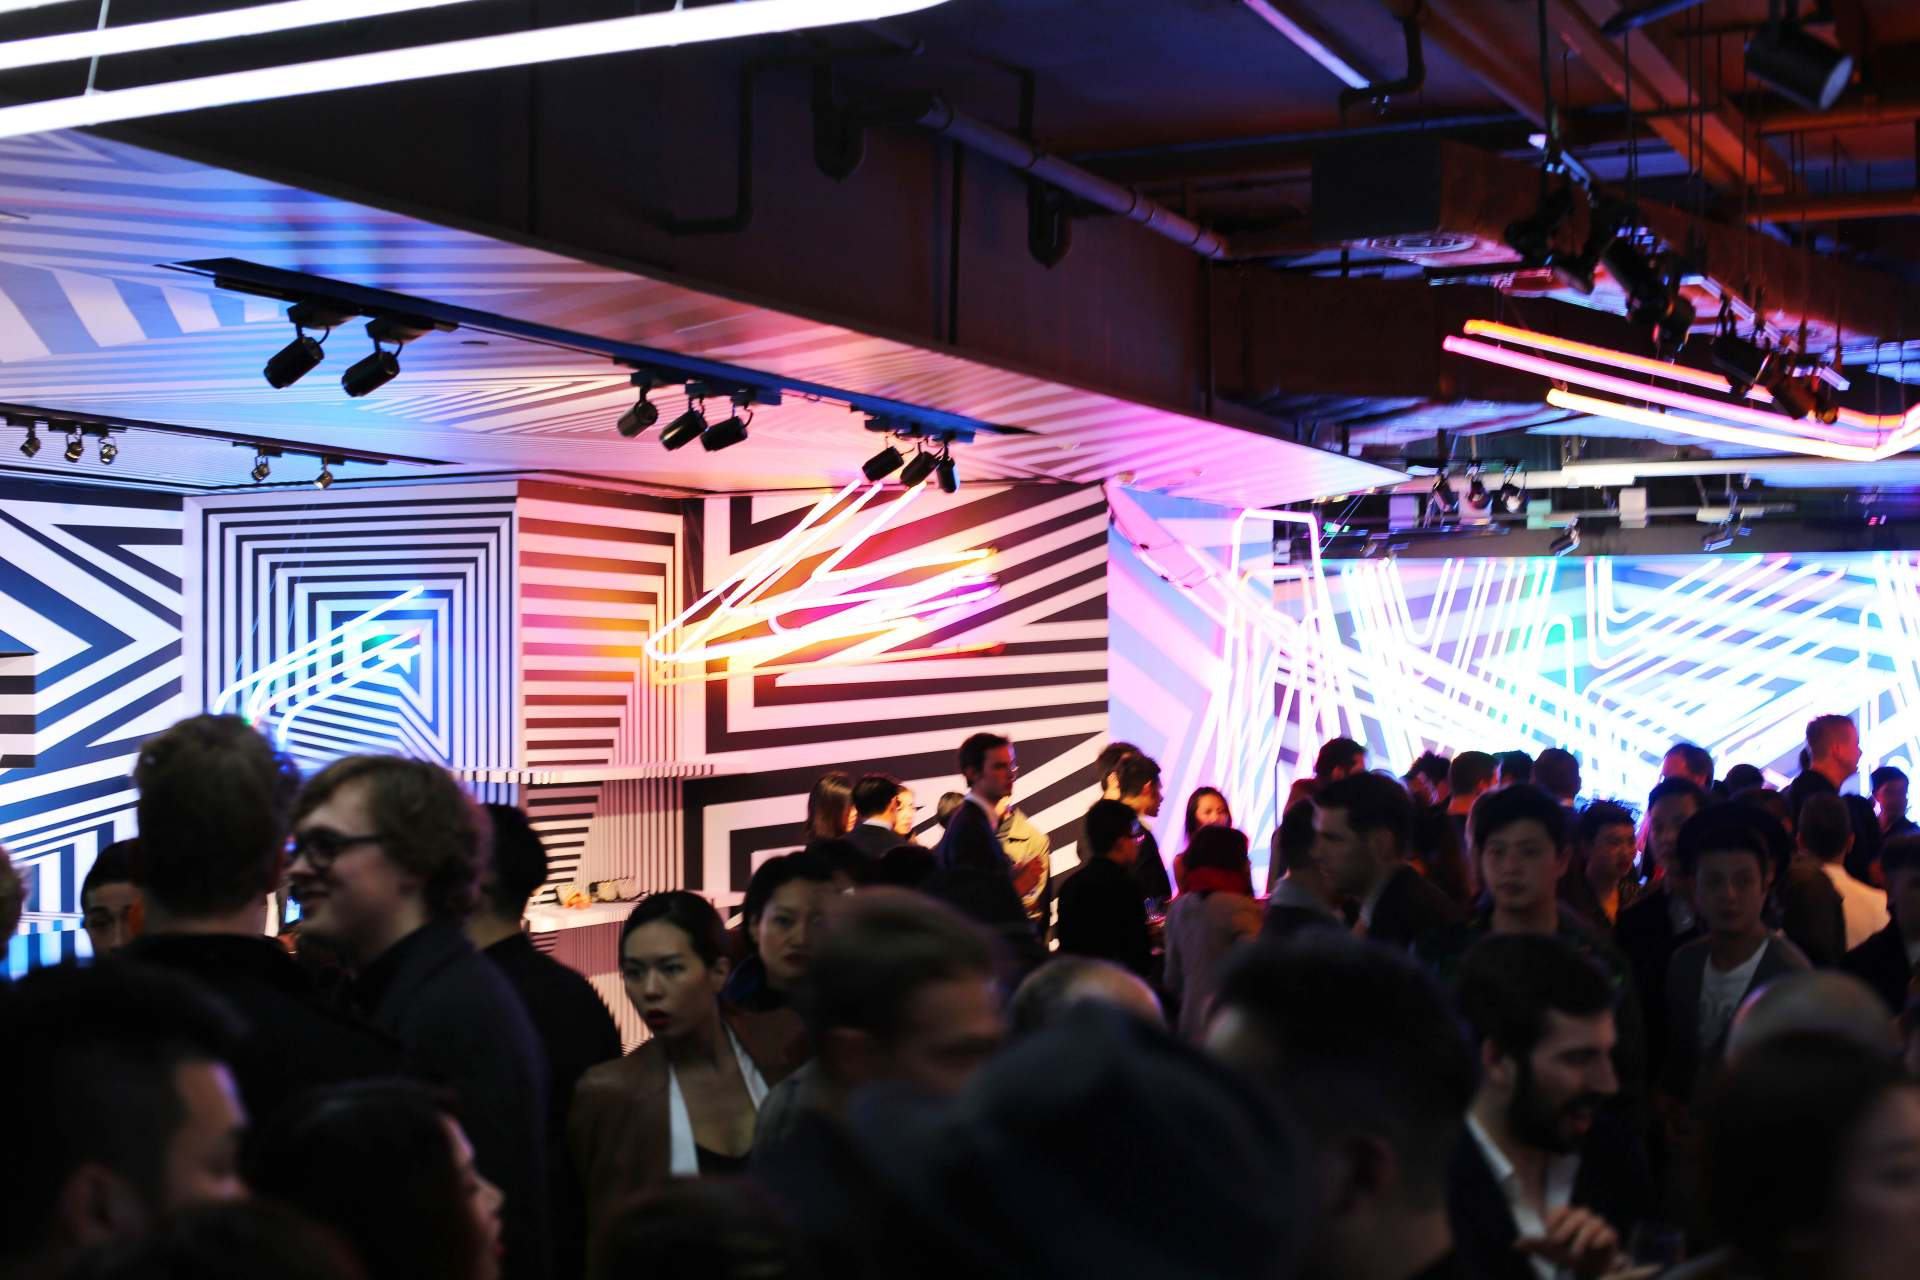 mcm x tobias rehberger event in Hong Kong inthefrow